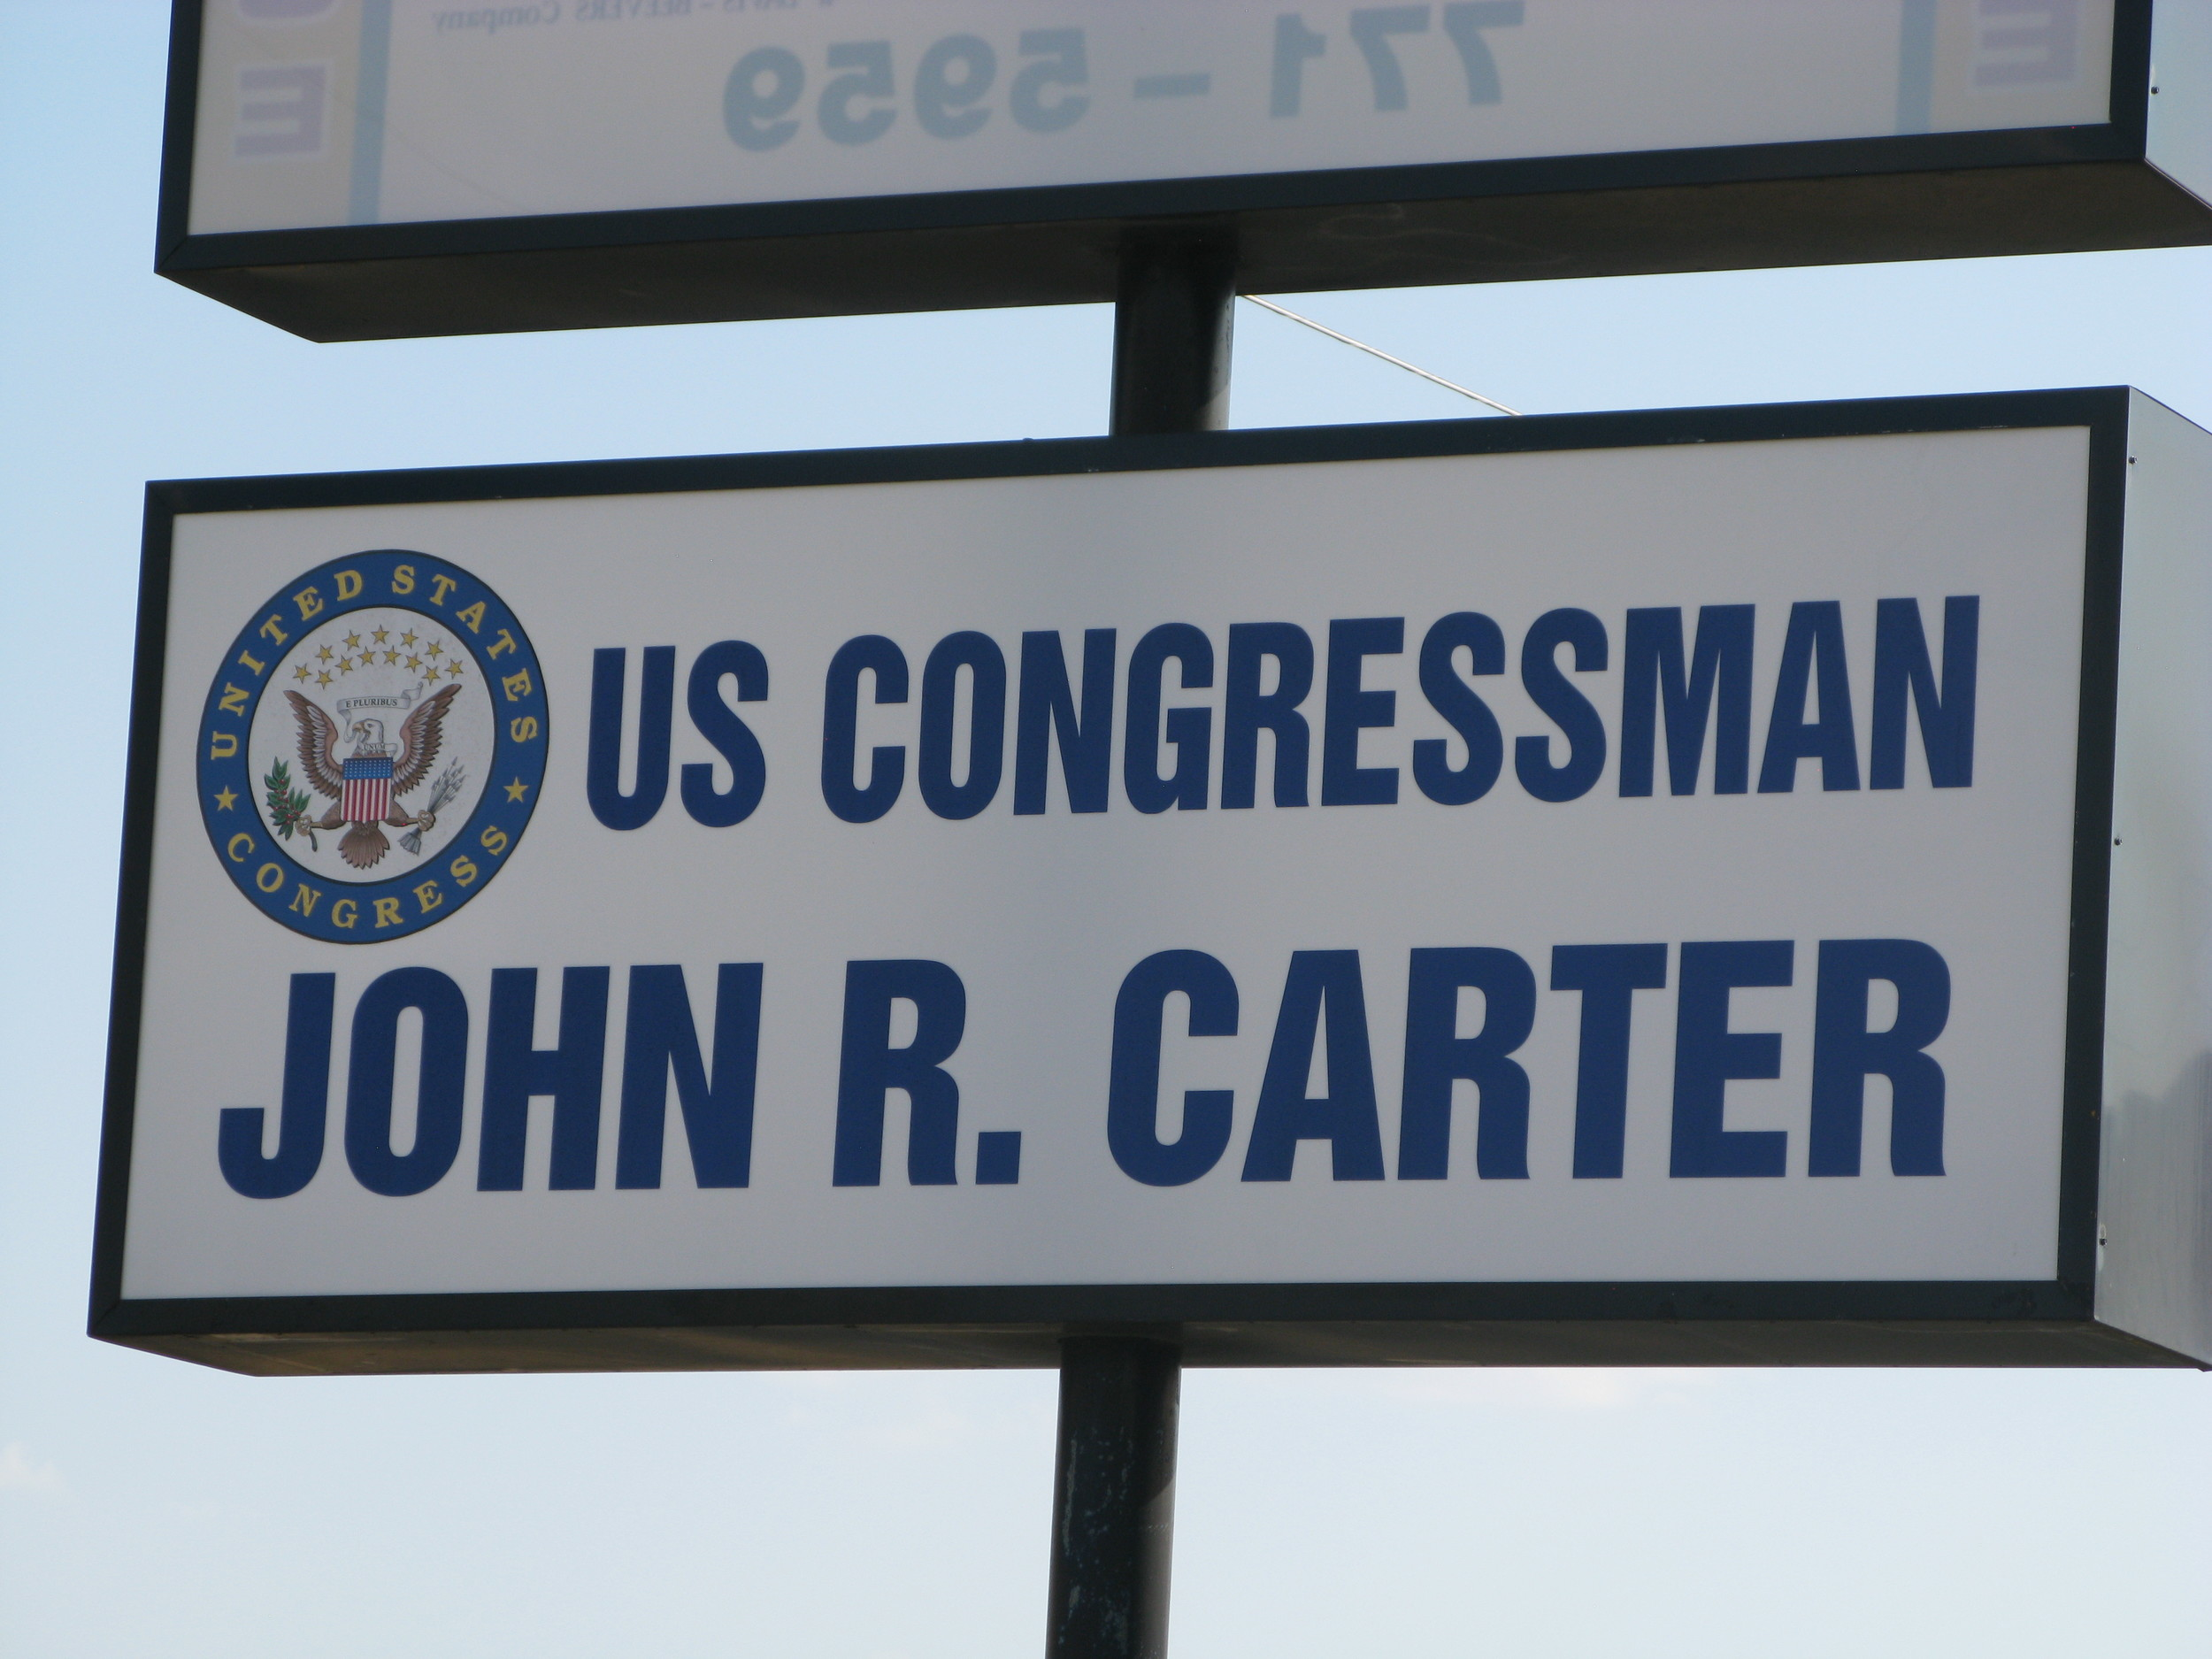 Congressman John R. Carter has offices in Temple, (pictured) and Round Rock within Texas' 31st Congressional district.